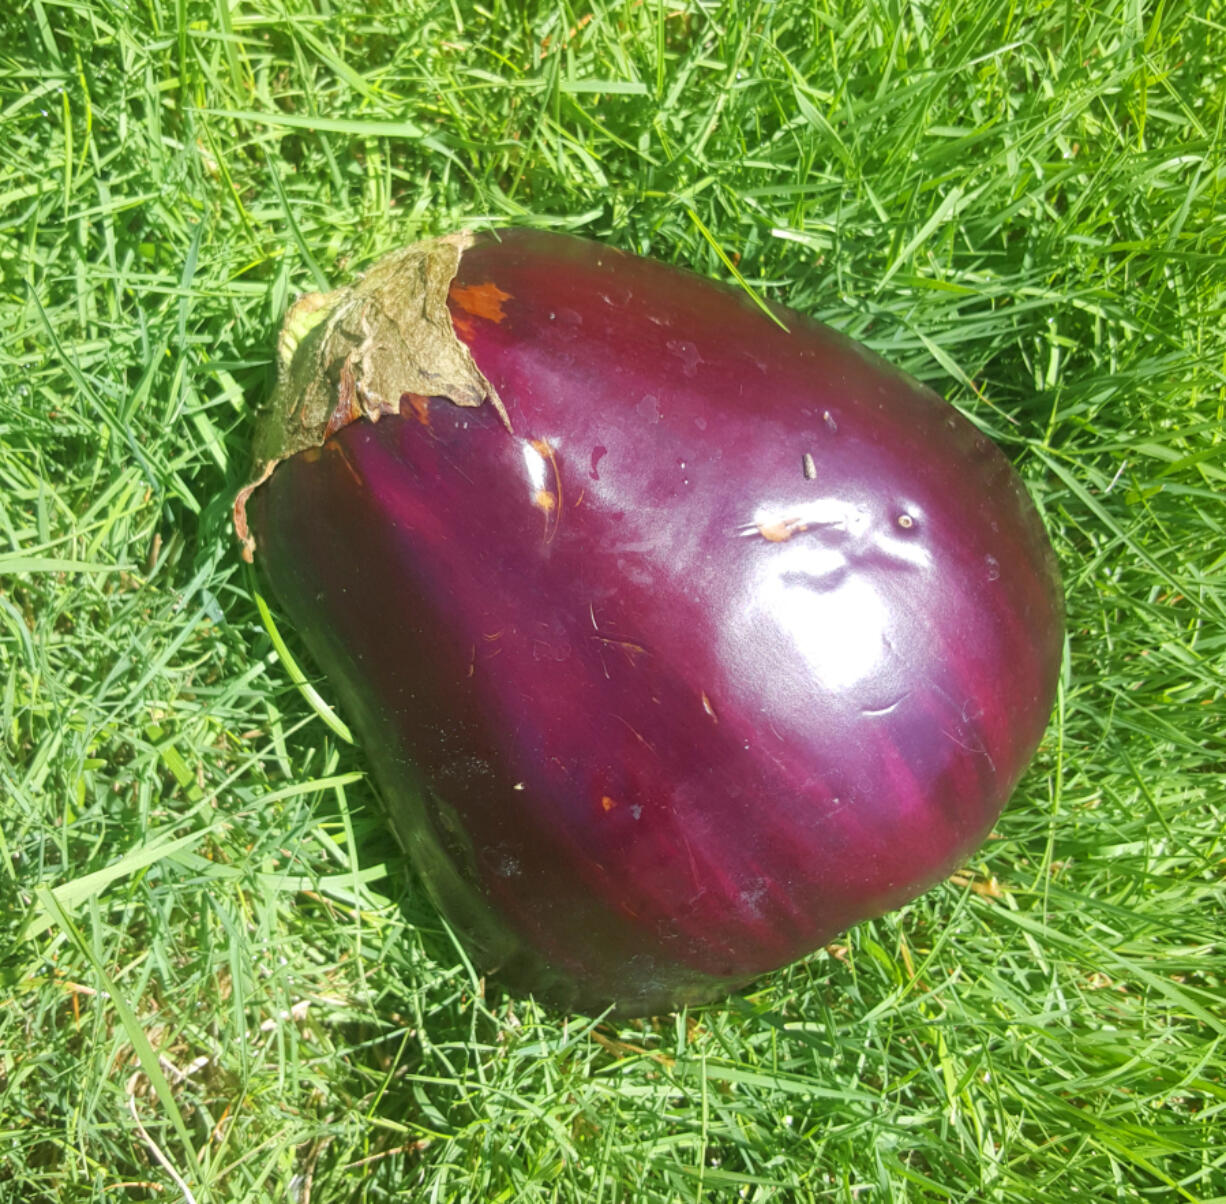 This big purple eggplant bears no resemblance to an egg, although the first eggplants to be eaten in England were small and white, like a chicken egg.